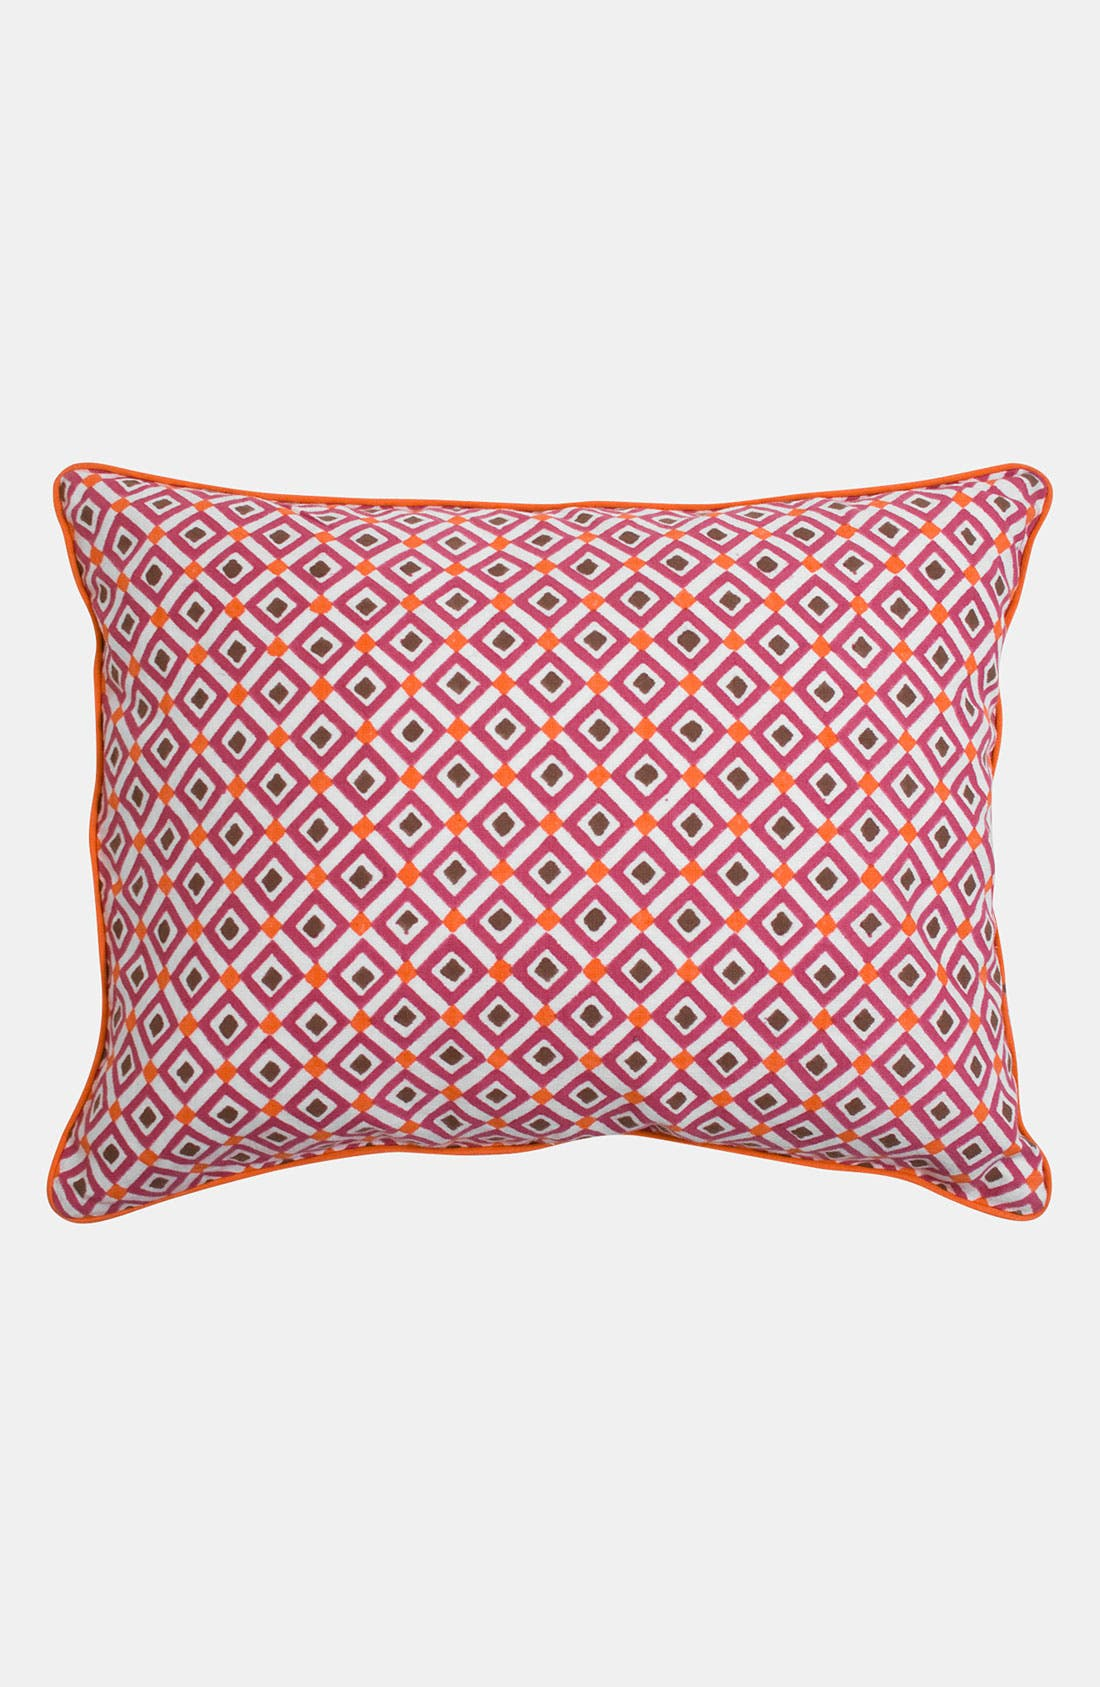 Main Image - Jonathan Adler 'Bobo Diamond' Pillow